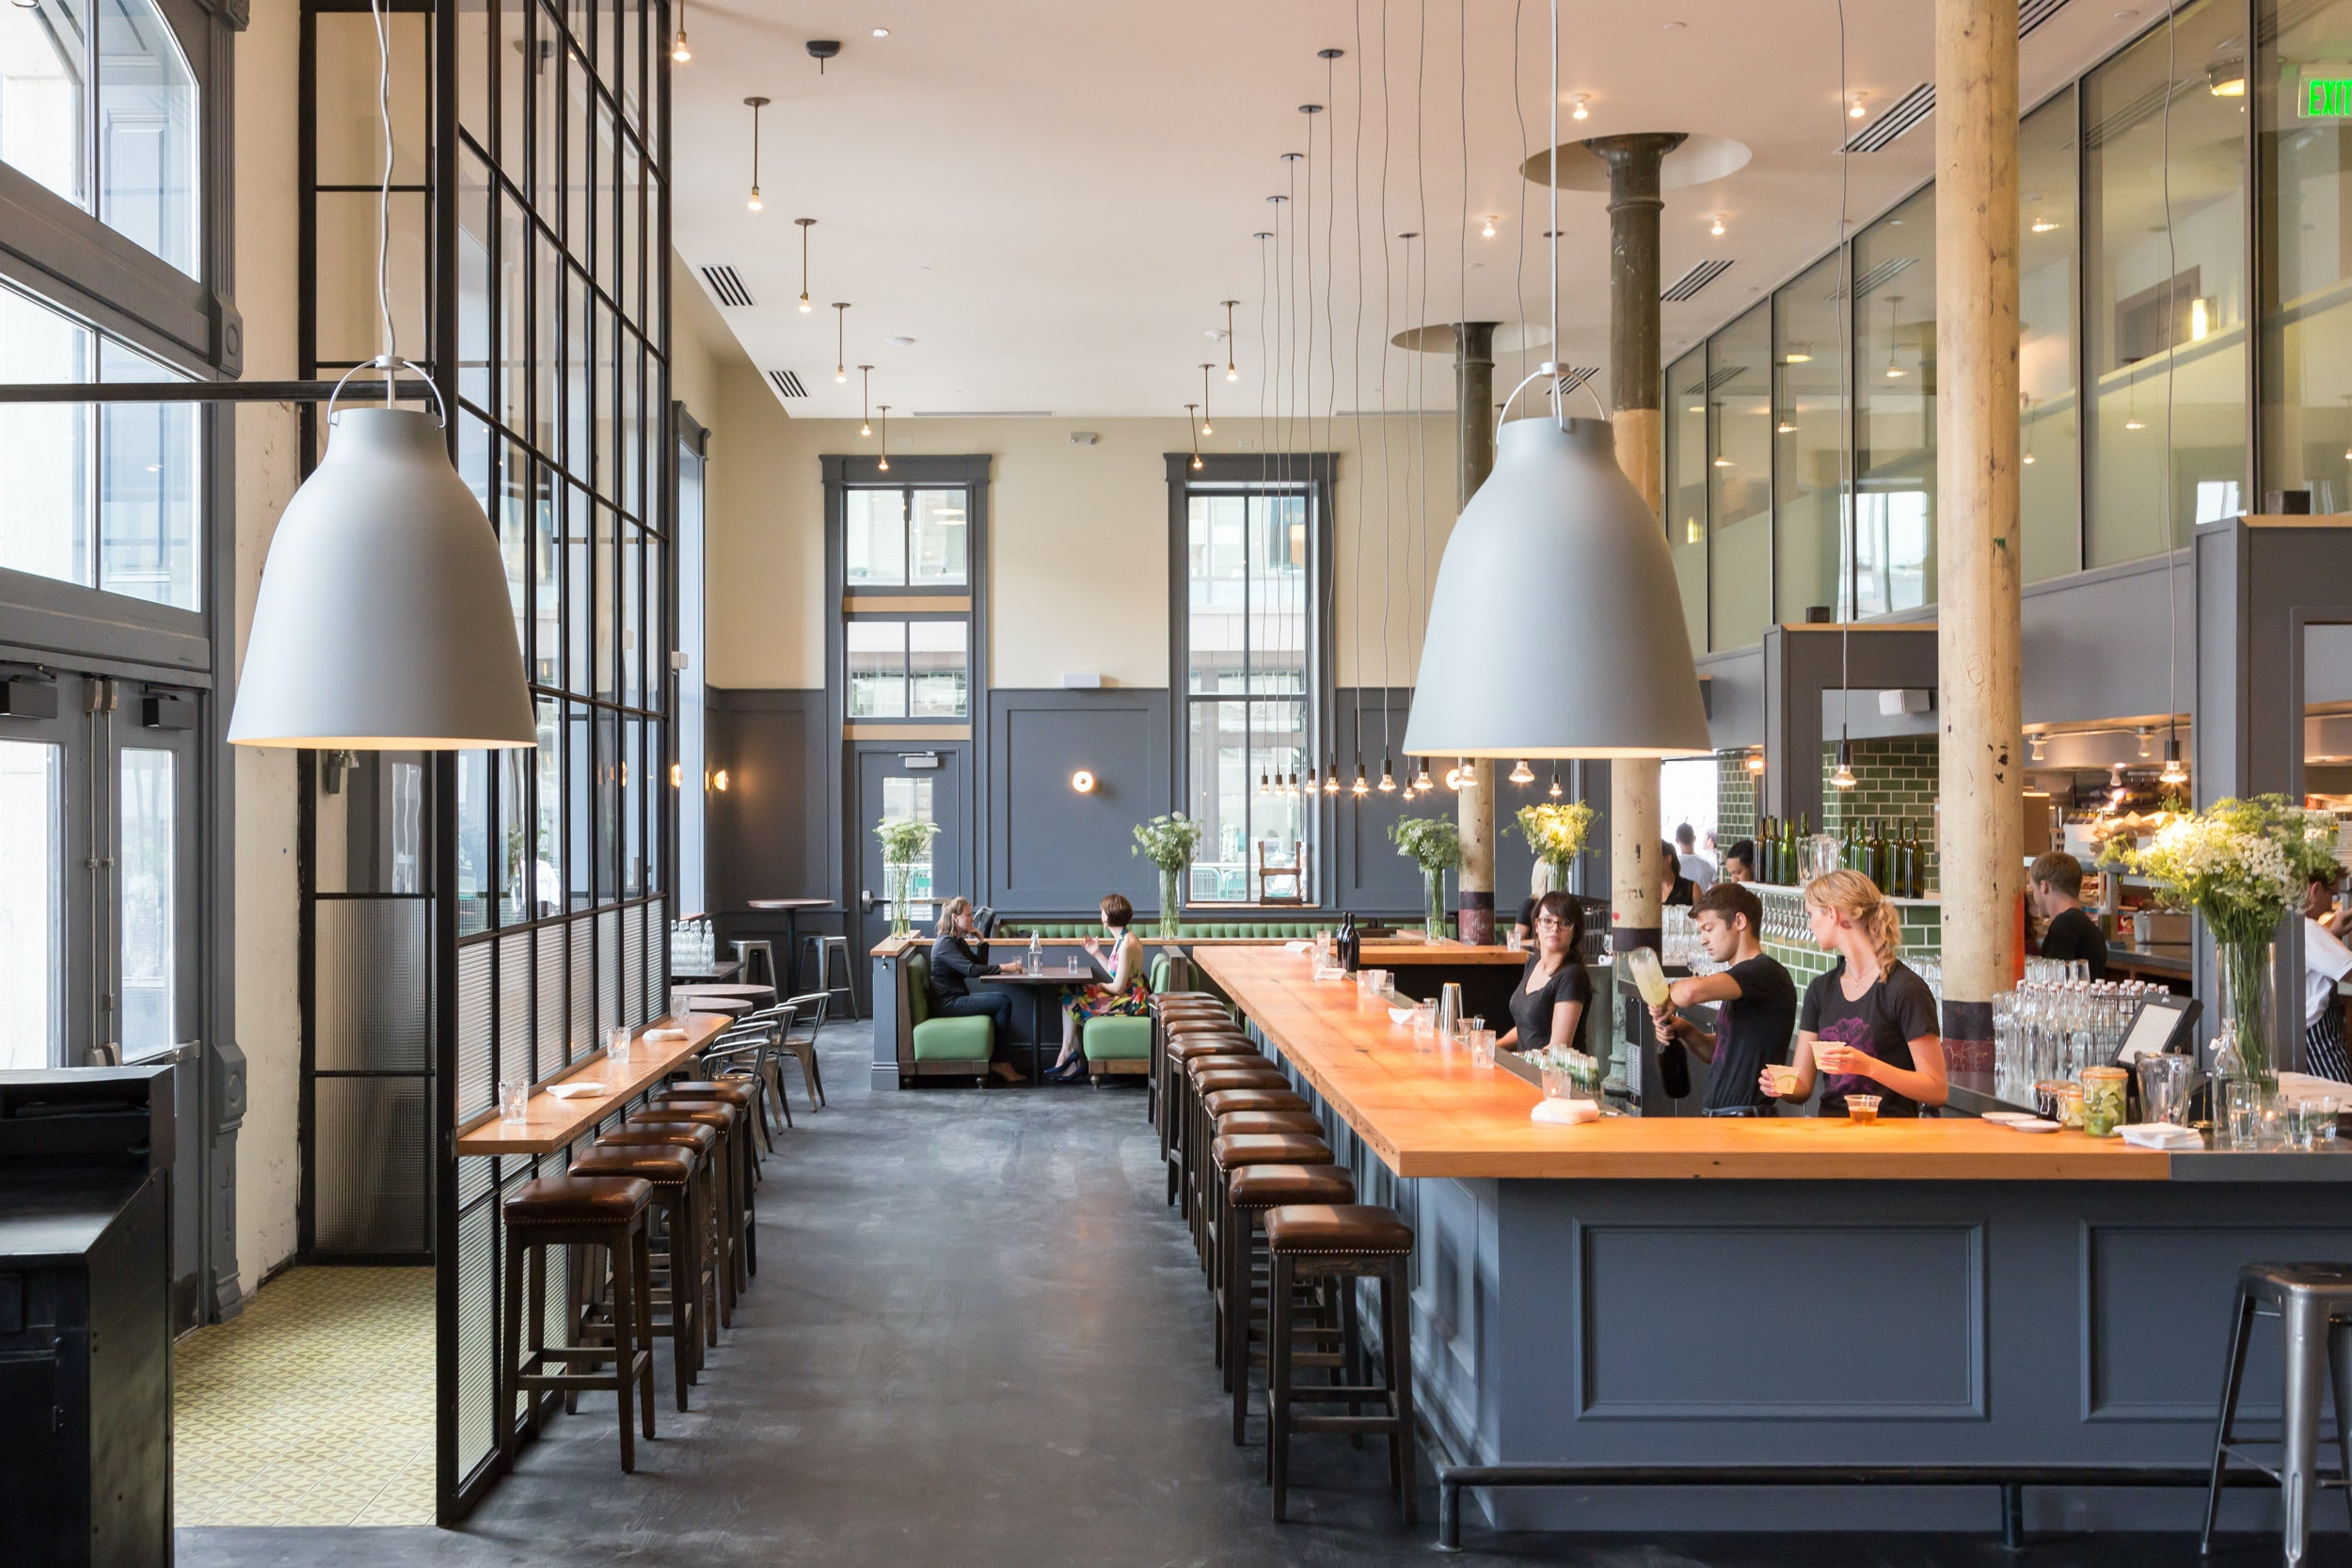 Location Denver CO US Firm Role Sarah Semple Brown FAIA - Principal-in-Charge; Leila Schwyhart - Lead Designer Additional Credits SPECTRUM General ... & The Kitchen | Next Door: Union Station | Semple Brown | Architects ...